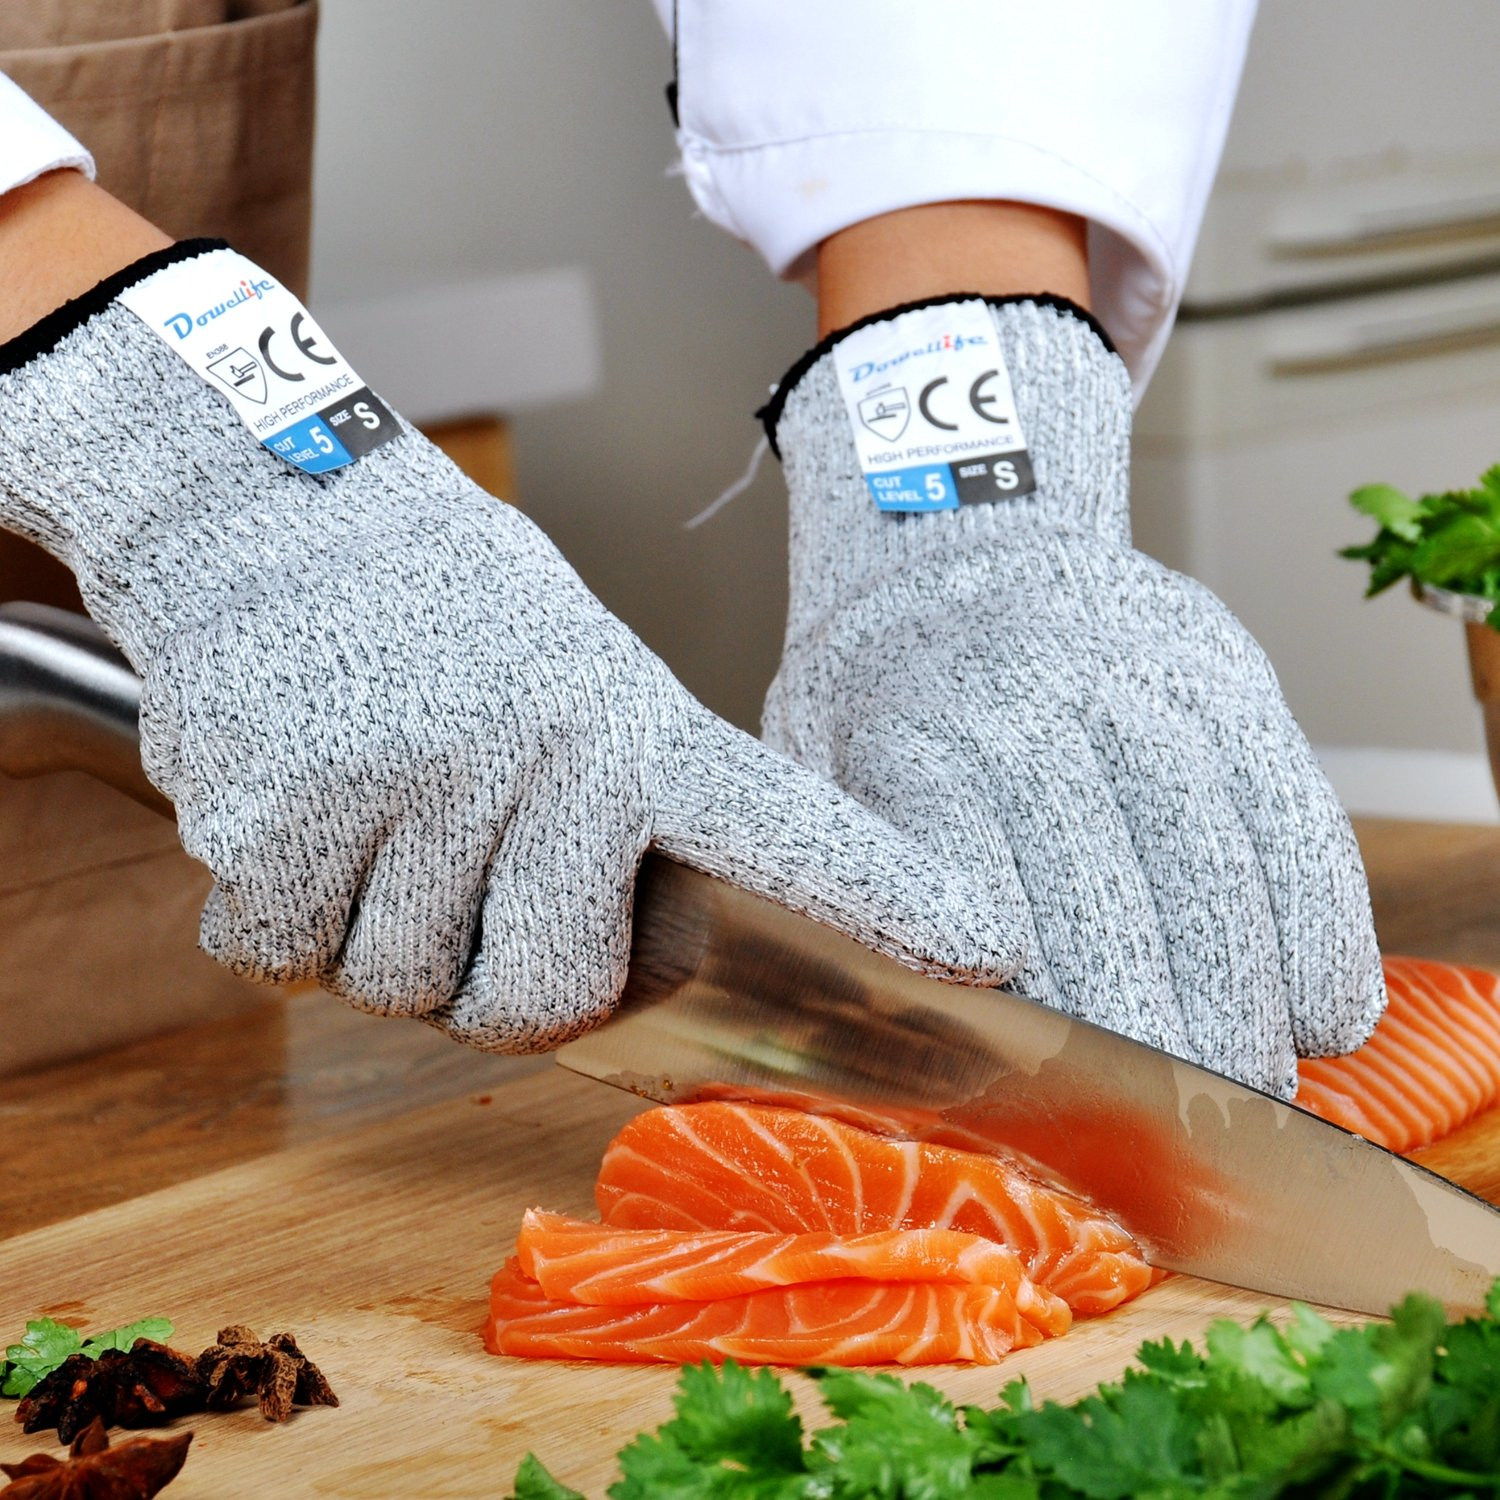 Dowellife Cut Resistant Gloves Food Grade Level 5 Protection, Safety ...